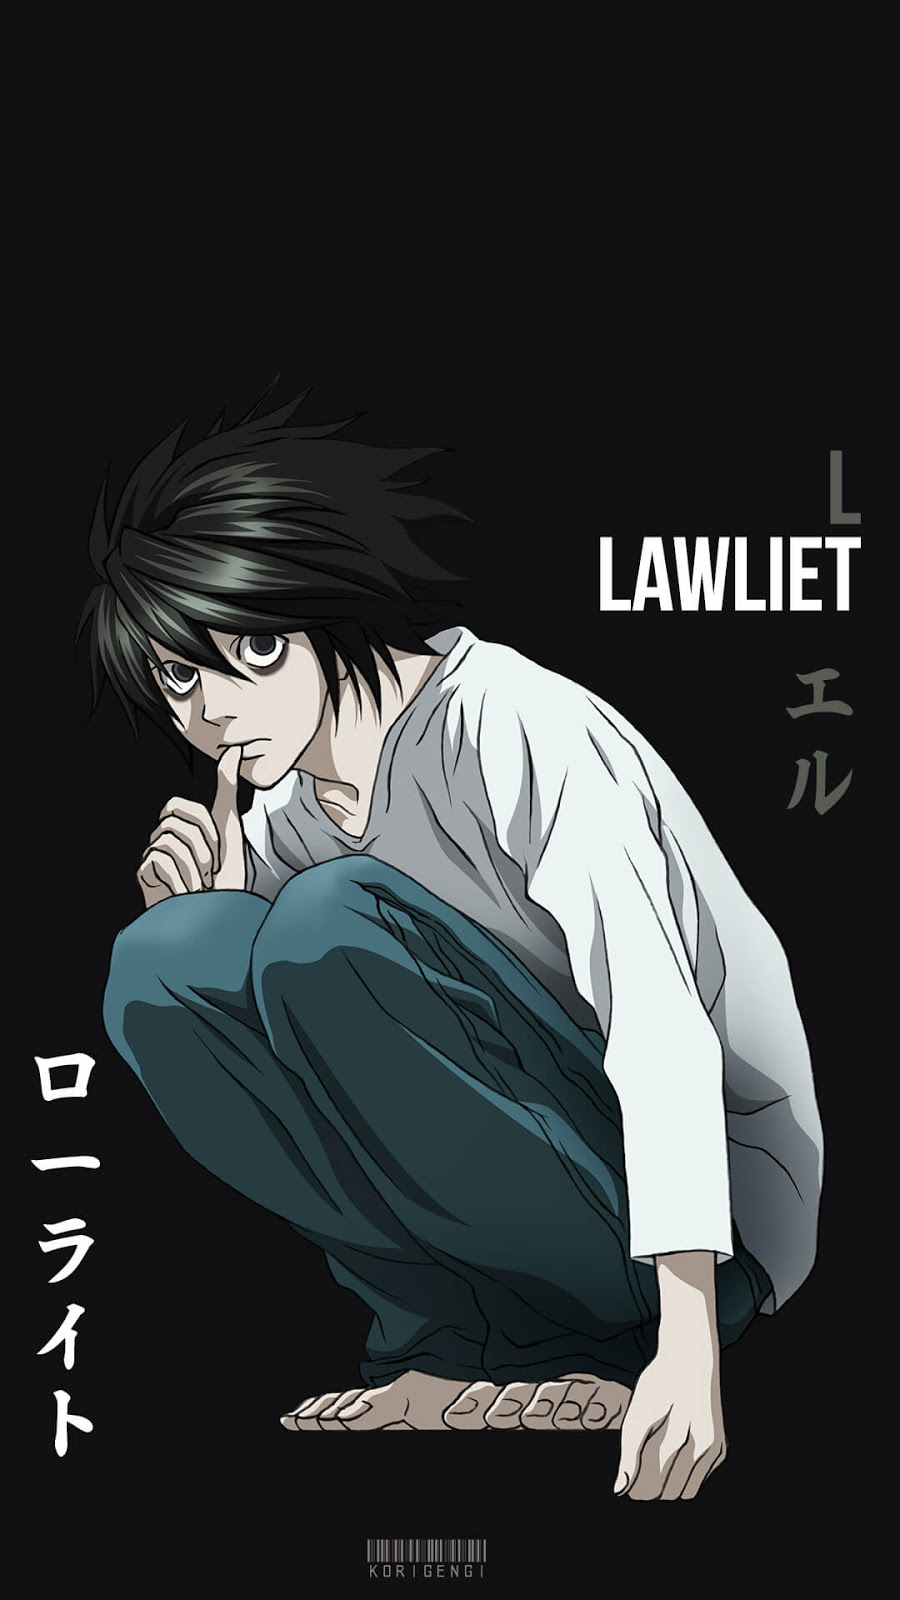 L Lawliet Death Note Wallpaper Korigengi Anime